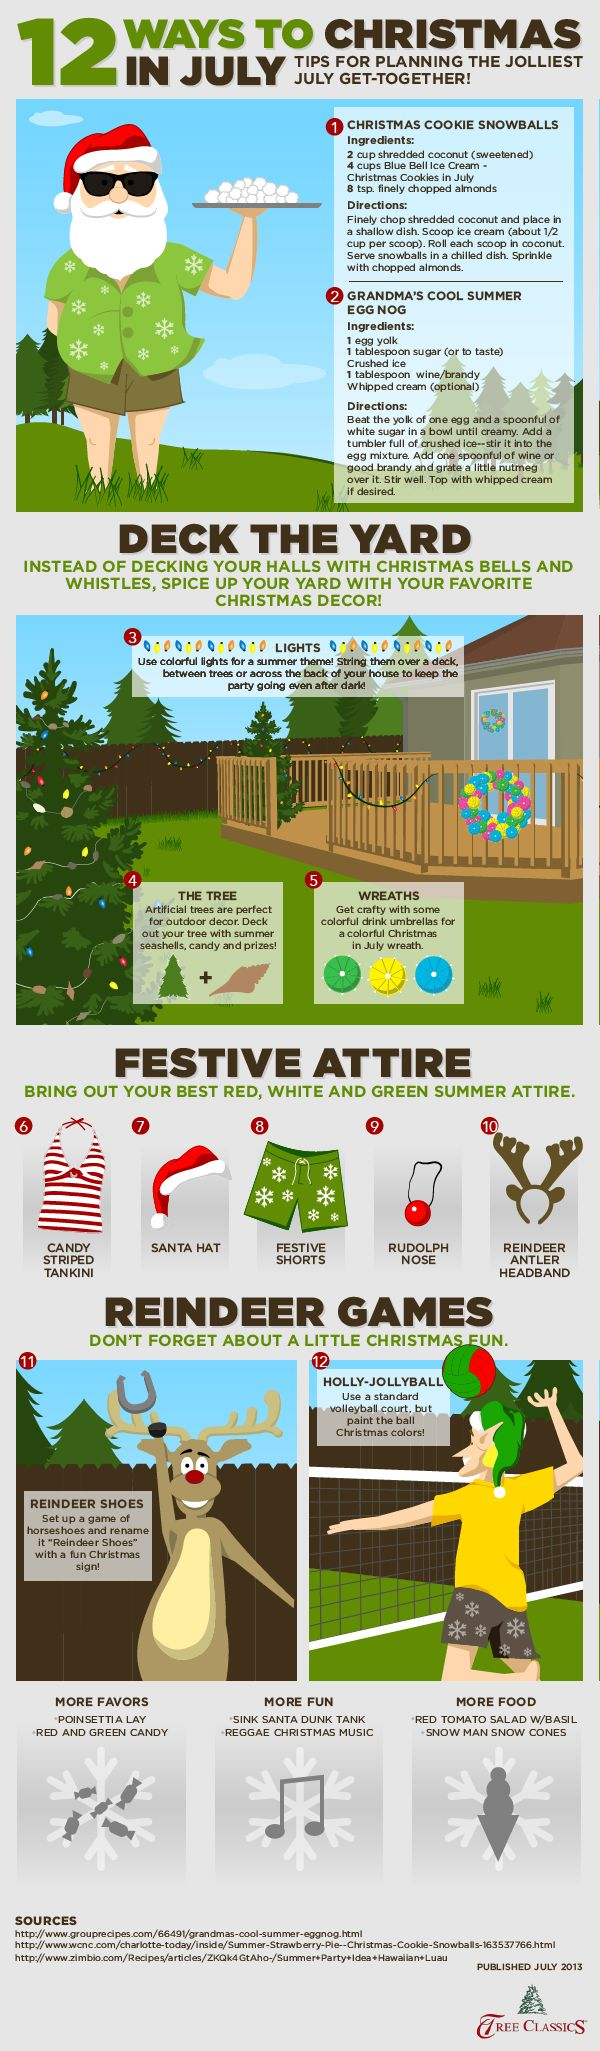 12 Ways to Christmas in July